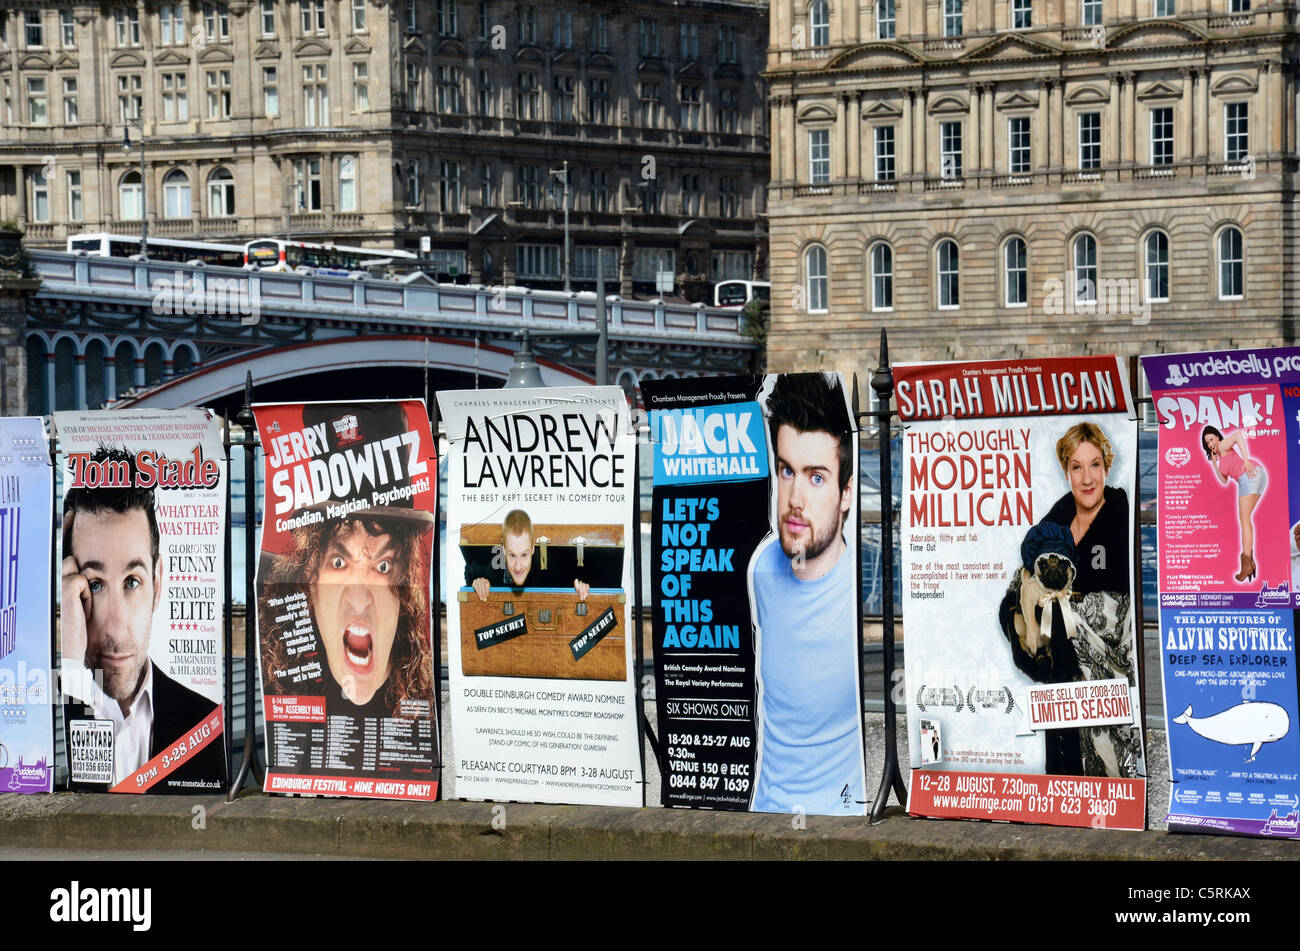 Posters advertising shows on the 2011 Edinburgh Festival Fringe against the backdrop of the New Town. - Stock Image